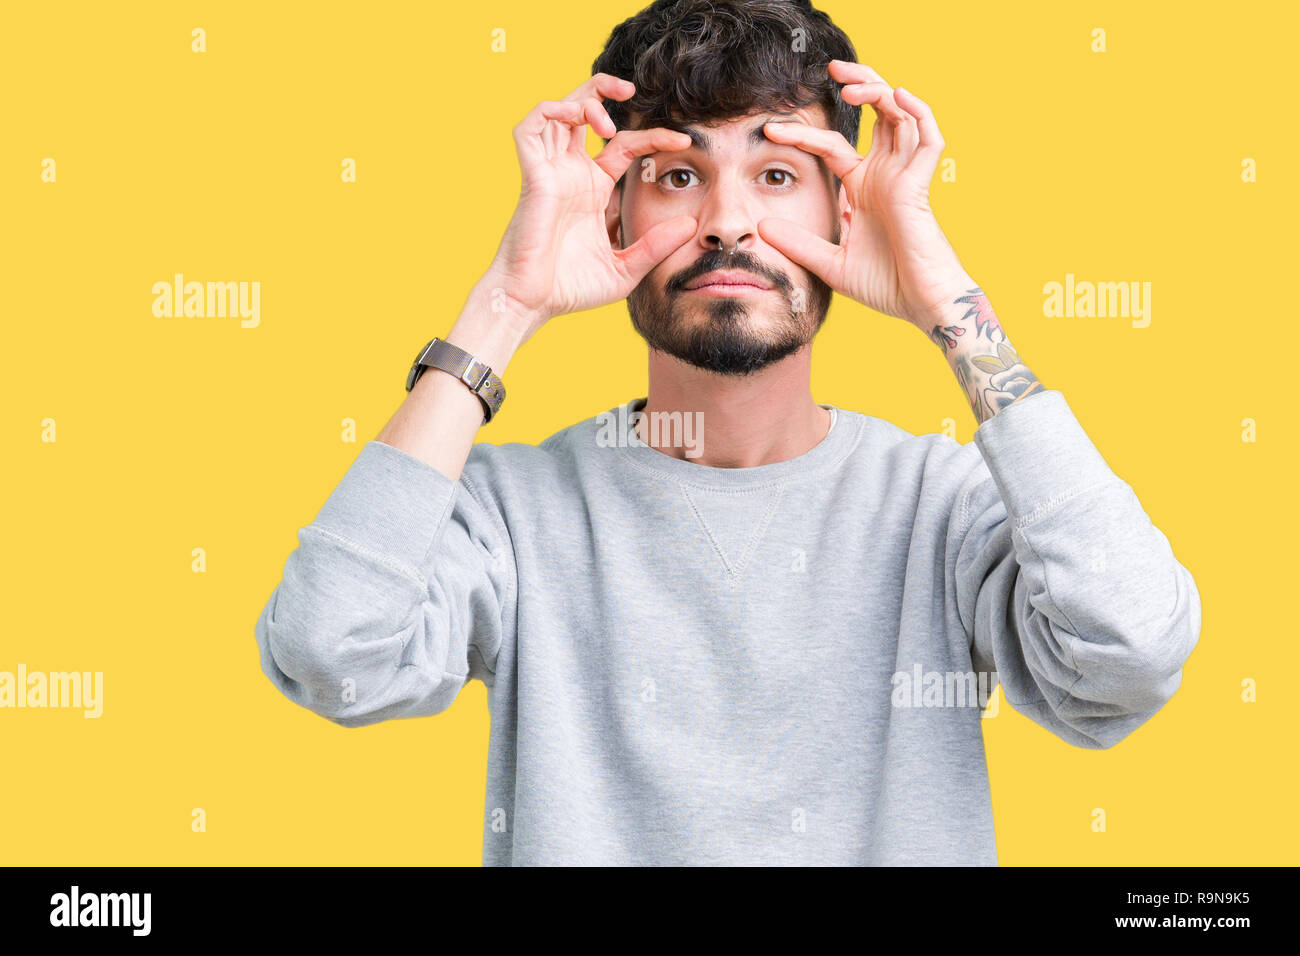 Insomnia Man With Beard Photos   Insomnia Man With Beard Images - Alamy a662cd1034fe